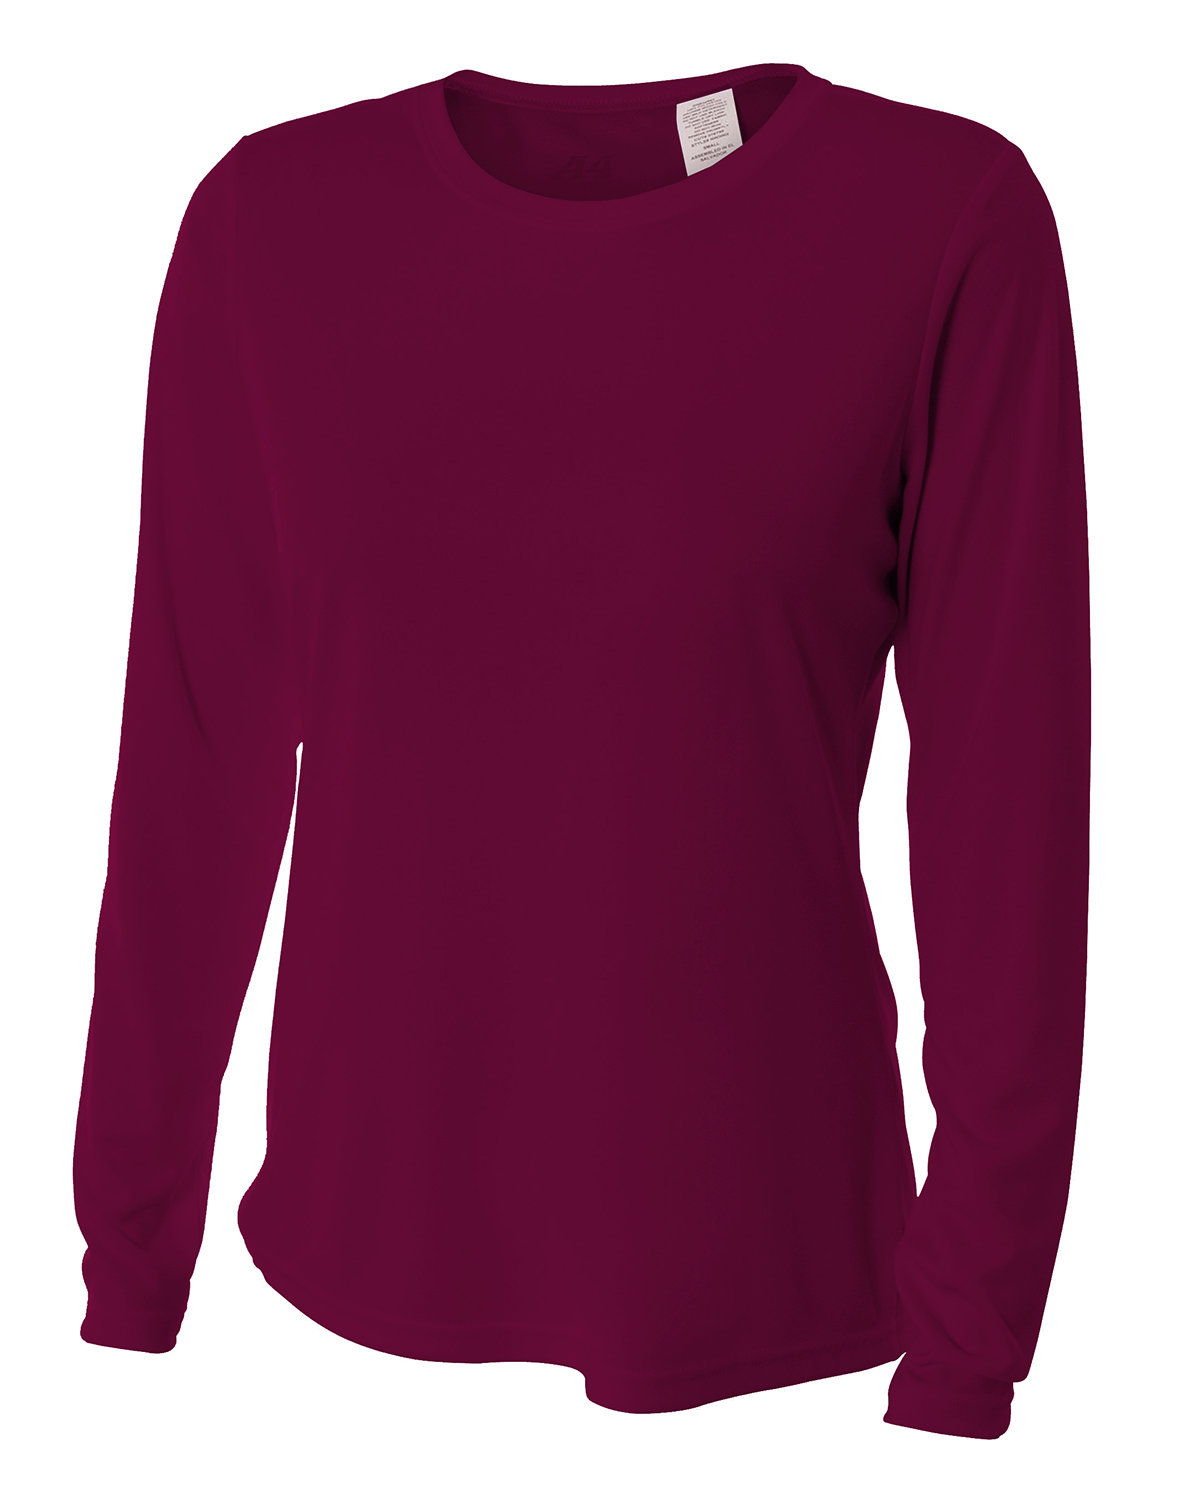 A4 Ladies' Long Sleeve Cooling Performance Crew Shirt MAROON